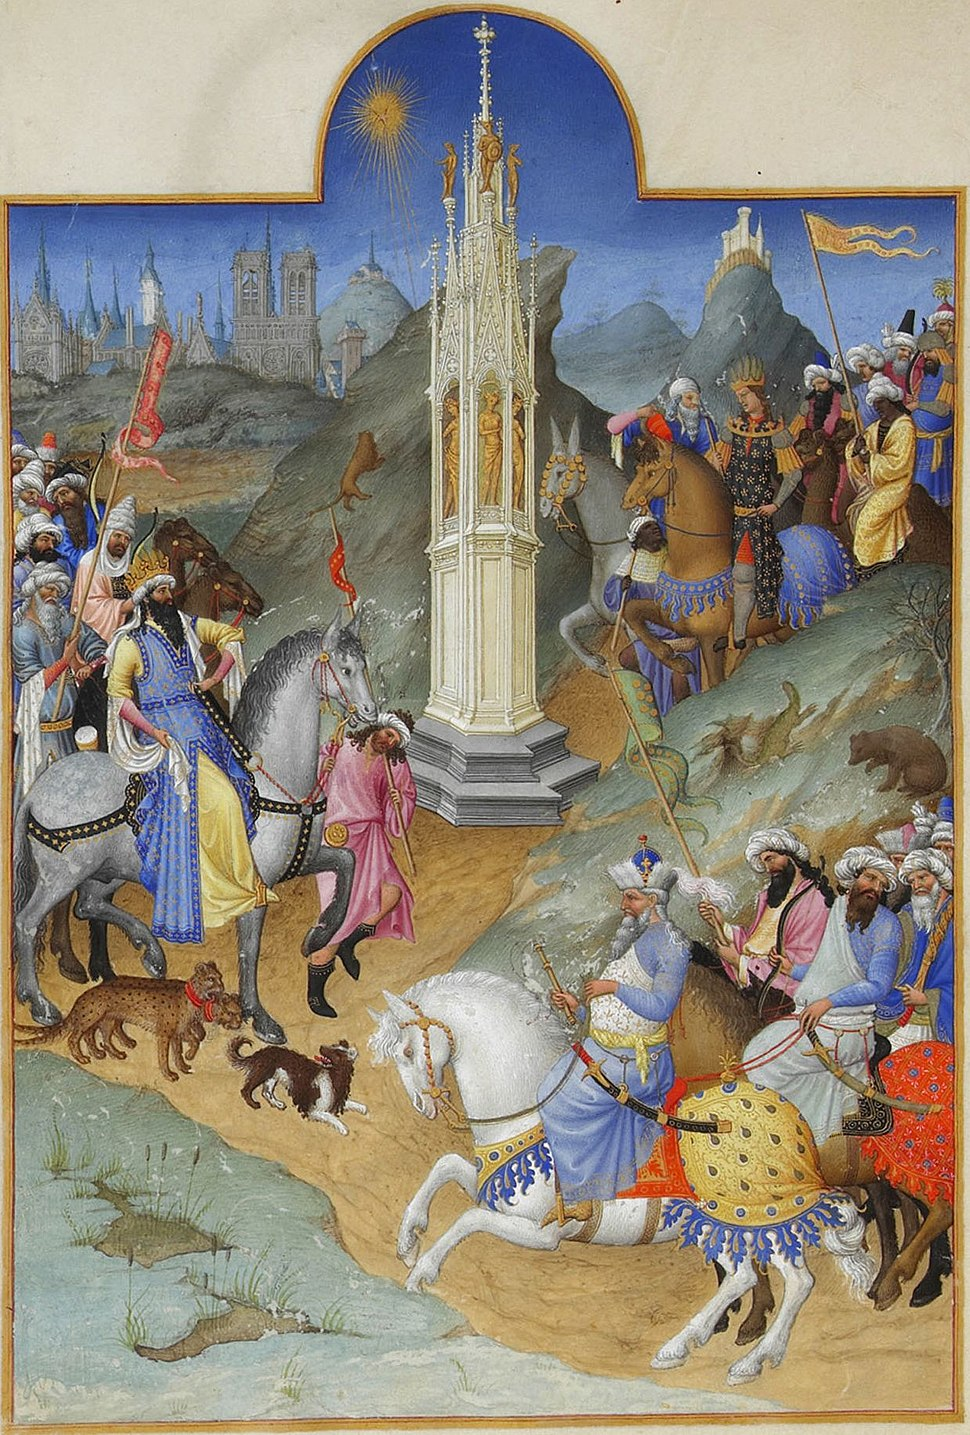 Folio 51v - The Meeting of the Magi